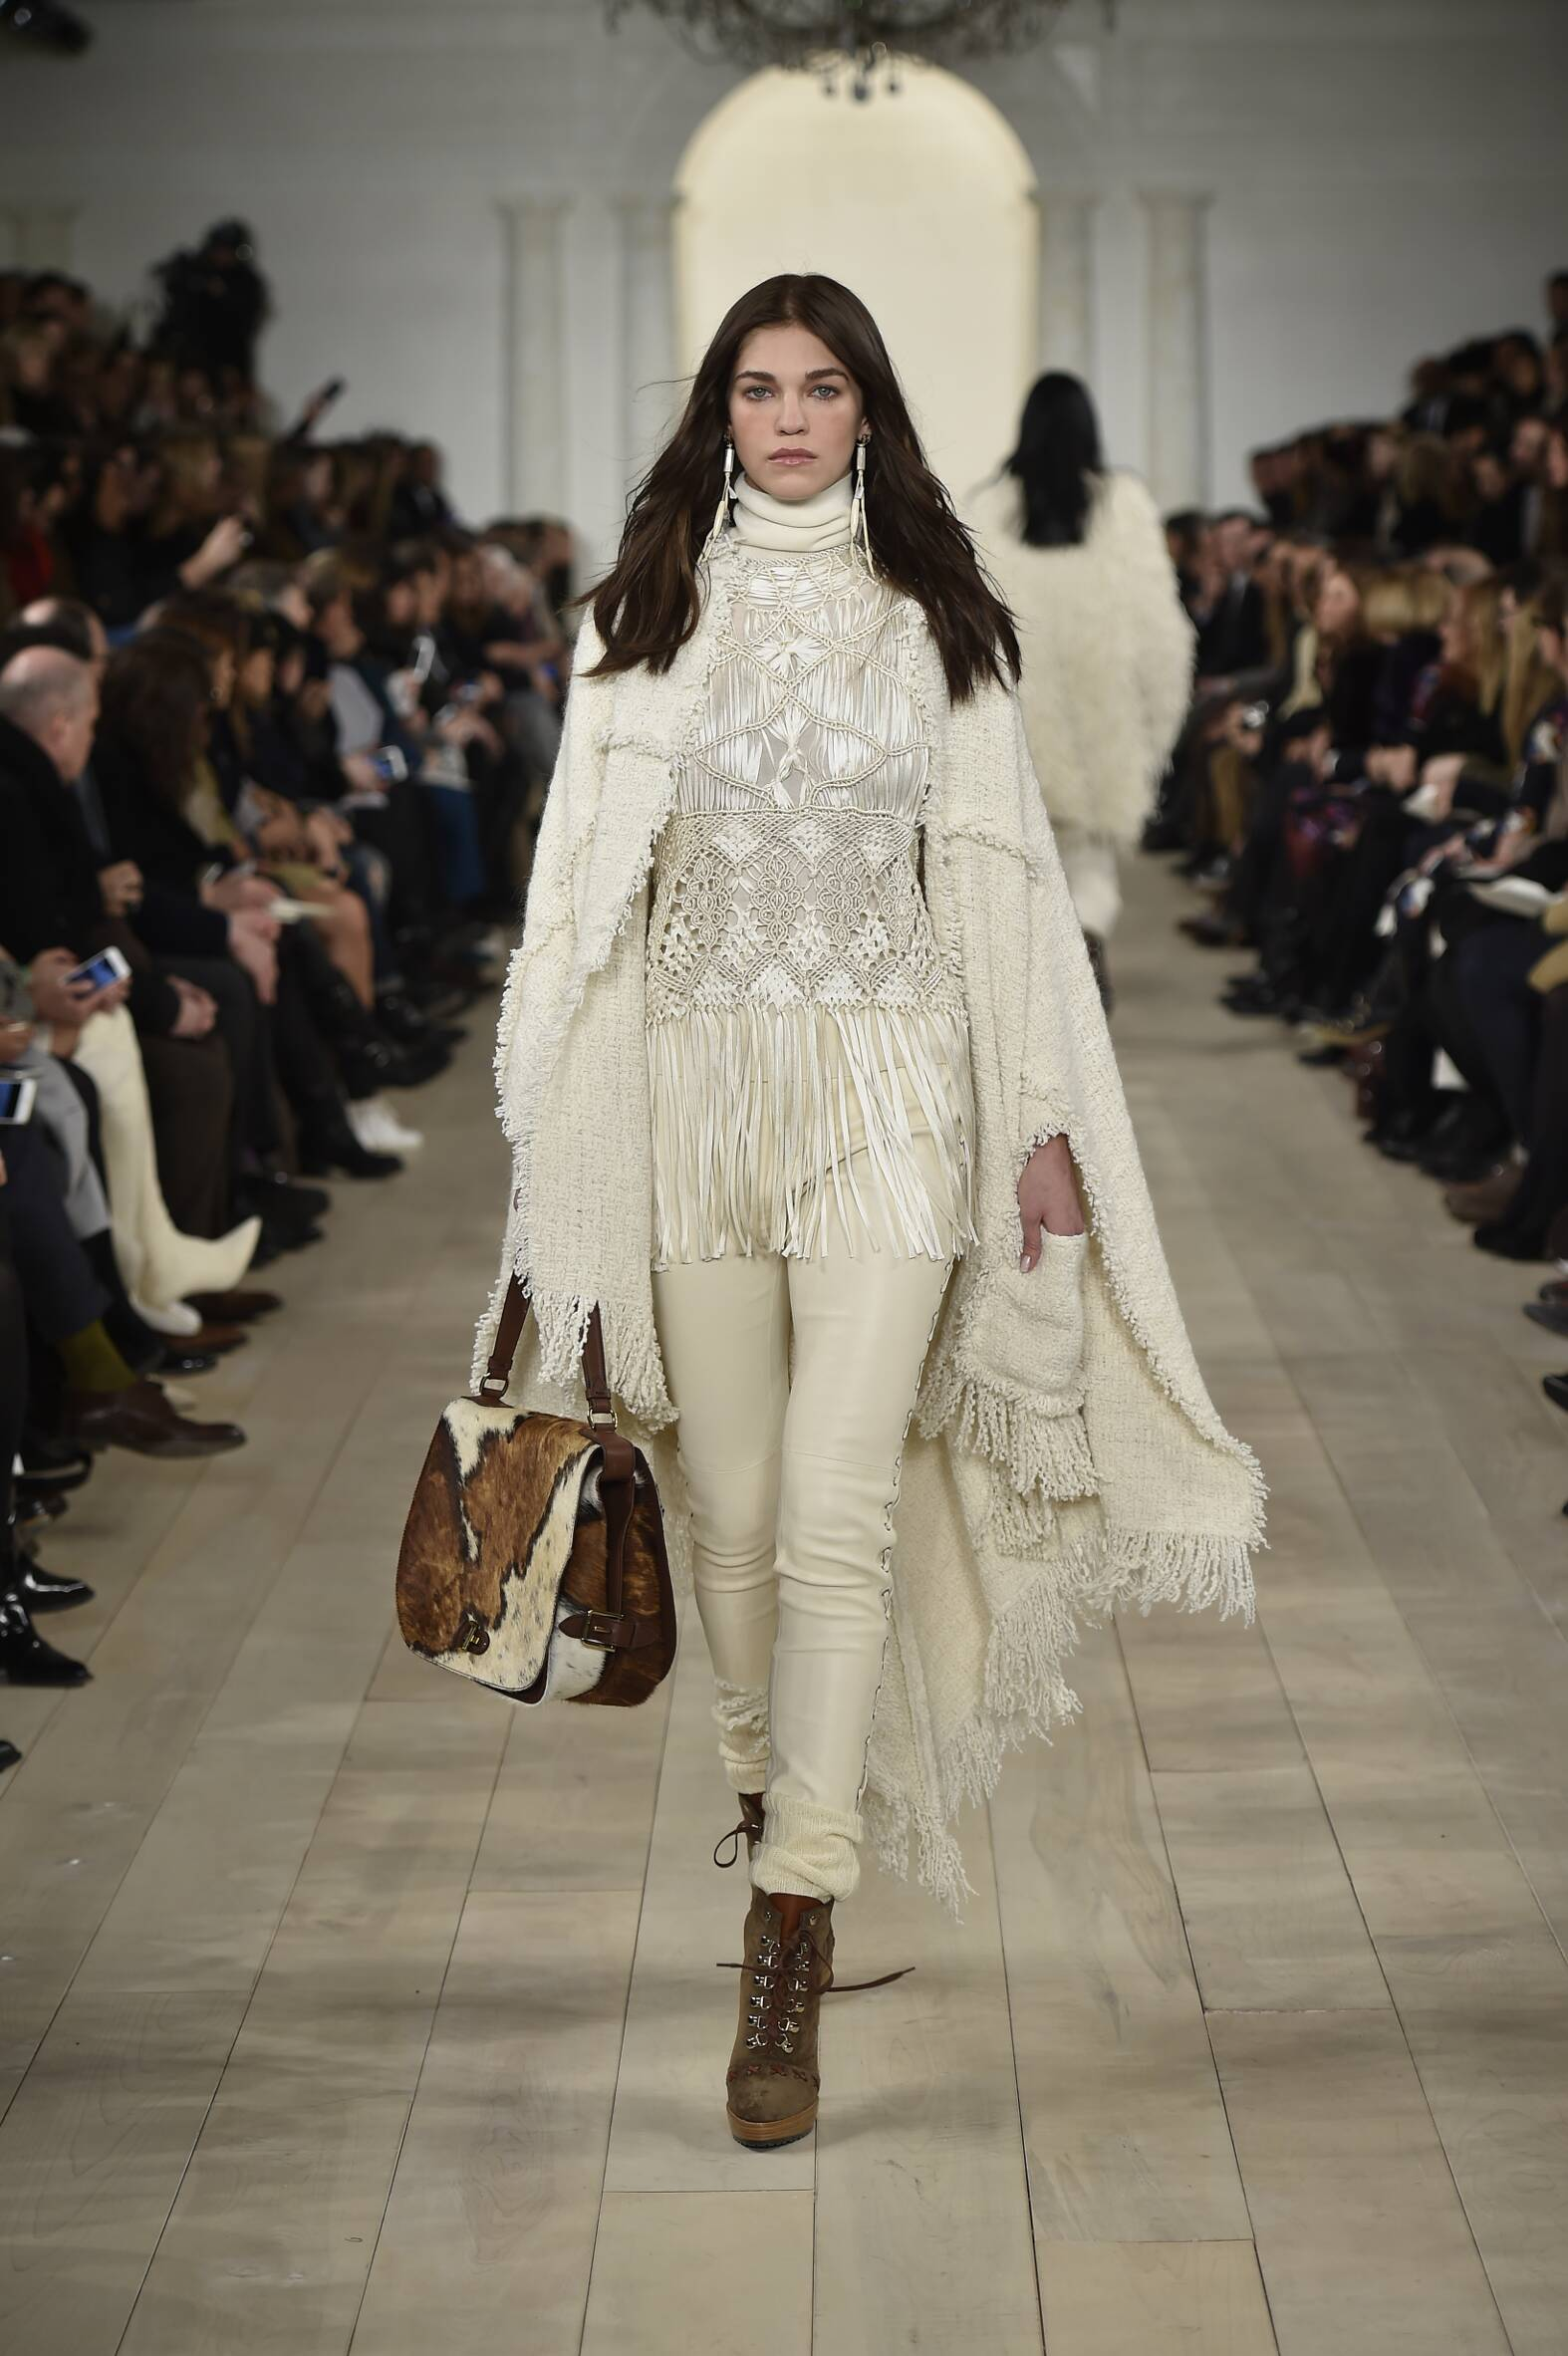 RALPH LAUREN FALL 2015 WOMEN'S COLLECTION | The Skinny Beep